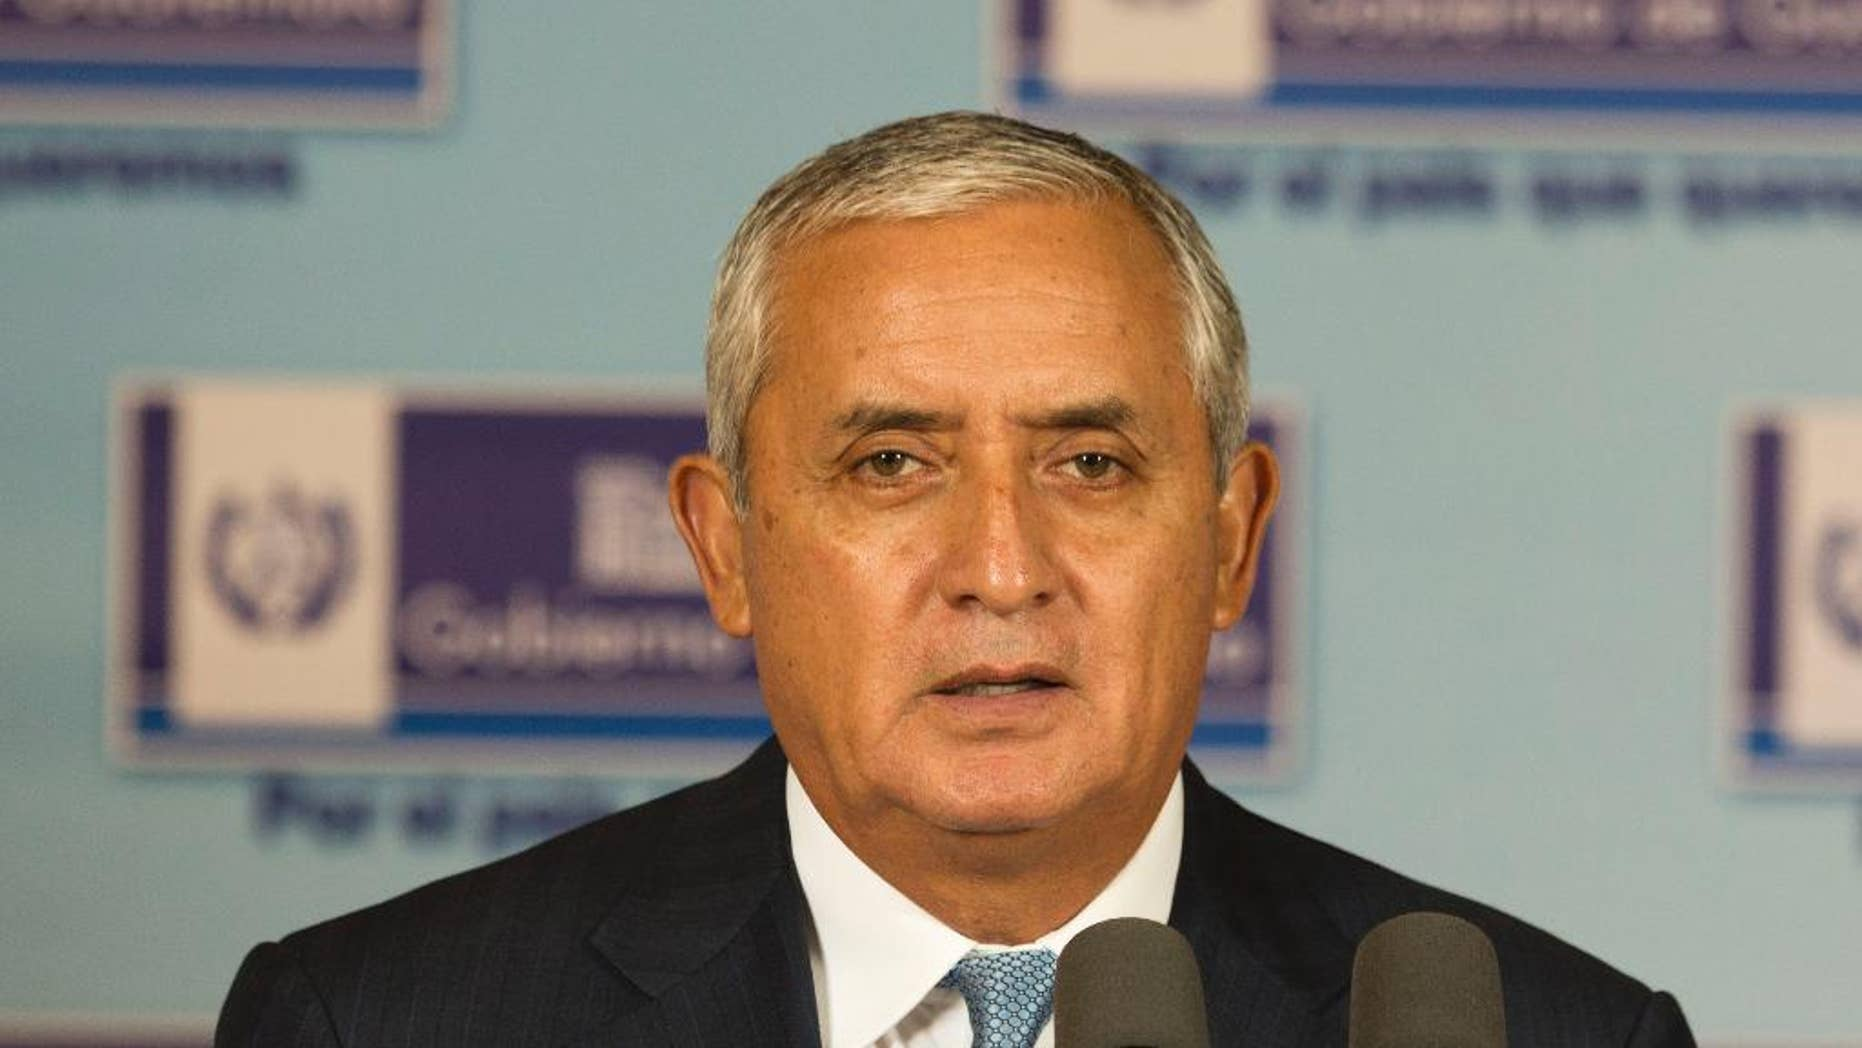 In this April 23, 2015 photo, Guatemala's President Otto Perez Molina gives a press conference at the National Palace in Guatemala City. Guatemala's Supreme Court has given the go-ahead for congress to decide whether to remove President Otto Perez Molina's immunity from prosecution in a corruption scandal. (AP Photo/Moises Castillo)